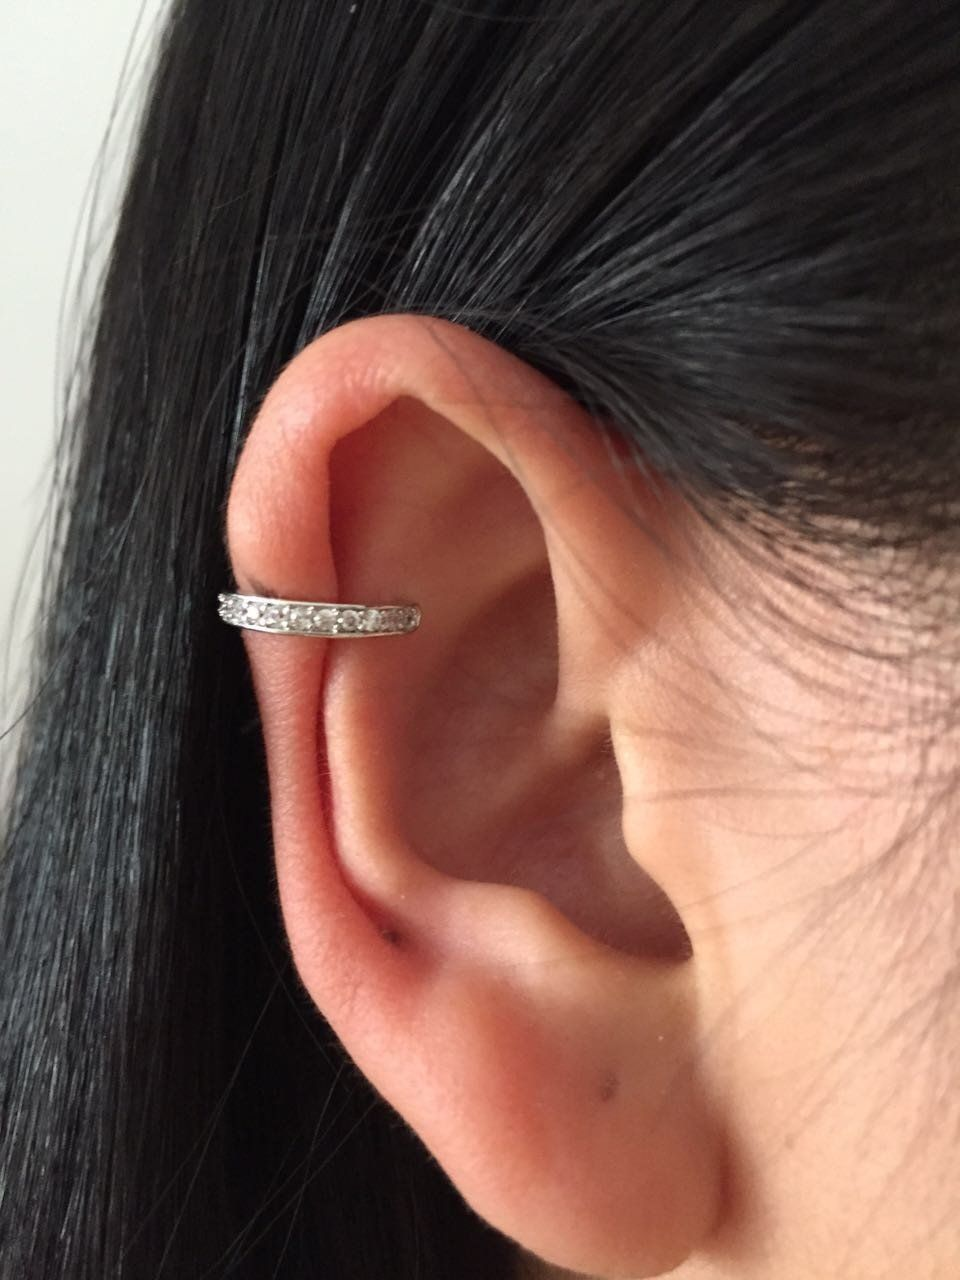 Cartilage piercing ideas  Tahlea Princess Crystal Ear Cuff Earring  Products  Pinterest